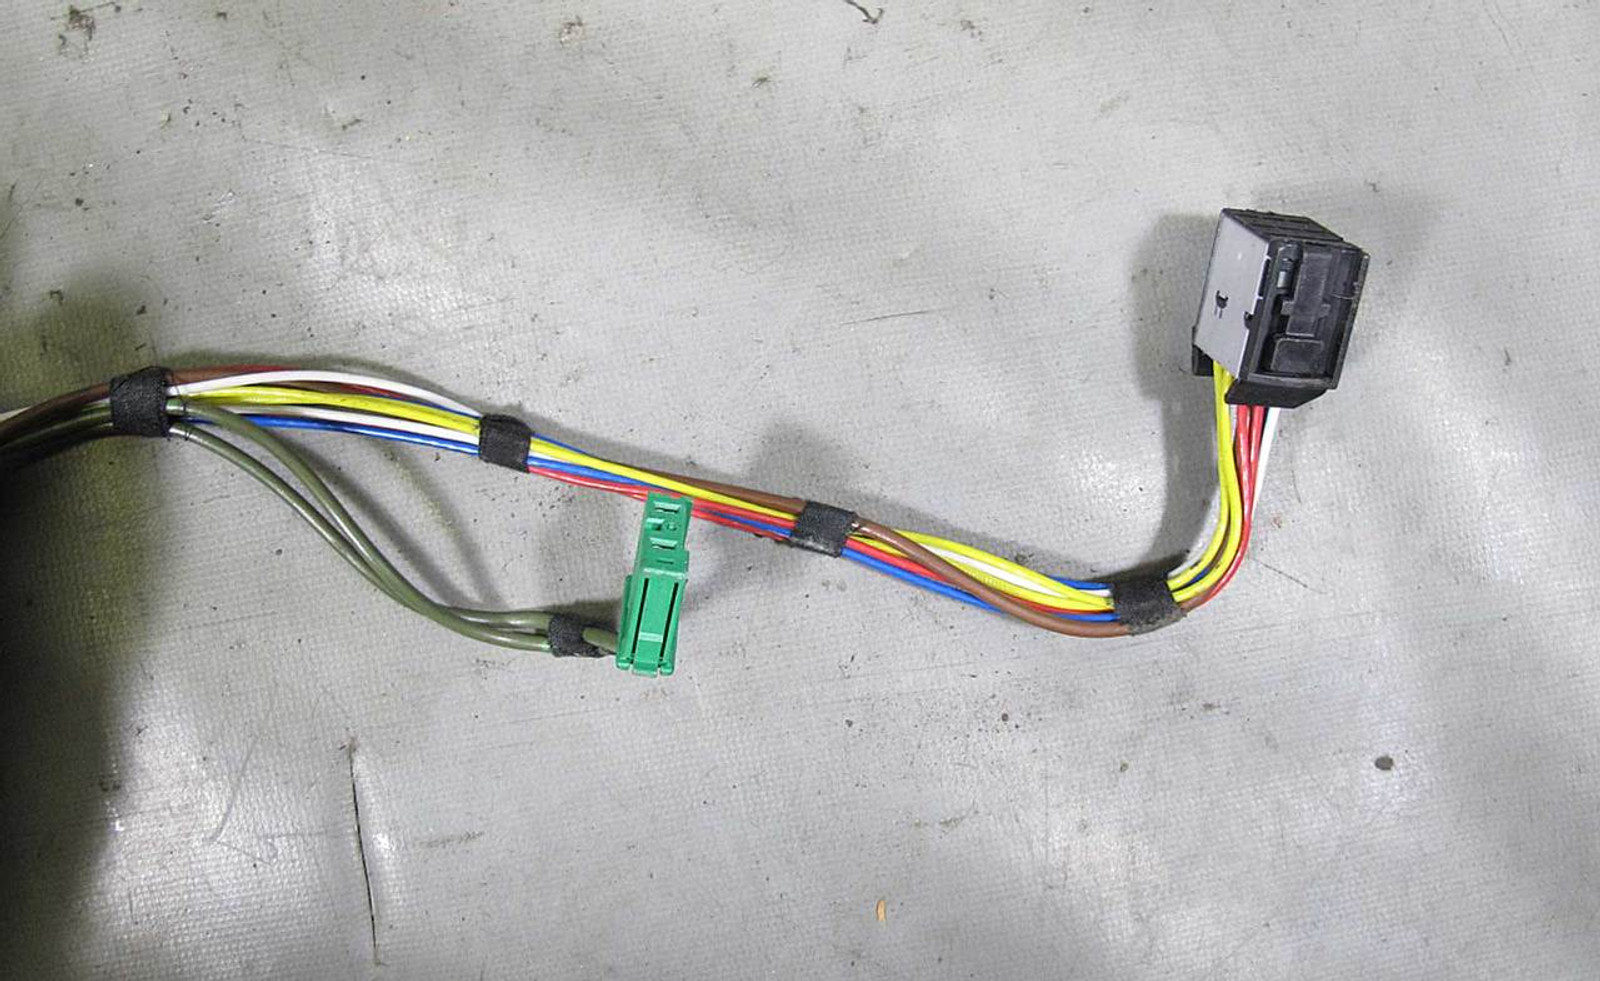 BMW E65 E66 745i 745Li Engine Ignition Coil Wiring Harness 2002-2005  Li Bmw Wire Harness on 03 bmw z3, 03 bmw 750i, 03 bmw m5, 03 bmw 330ci, 03 bmw 325xi, 03 bmw z4, 03 bmw 325ci, 03 bmw x5 m, 03 bmw z8, 03 bmw 750li,